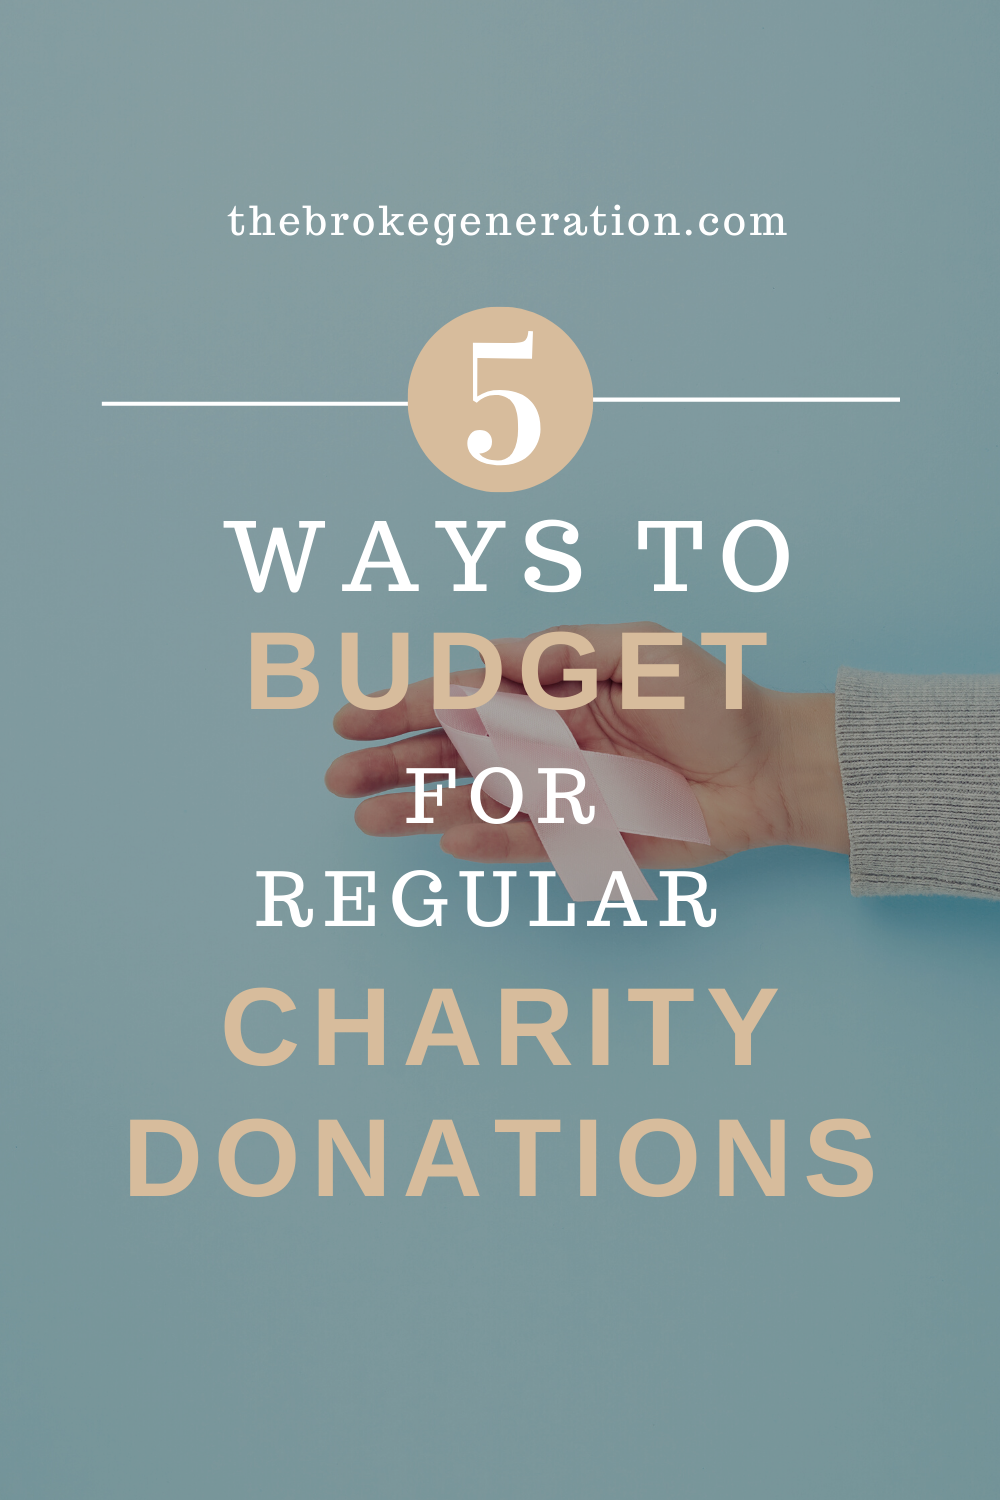 5 Ways to Budget for Regular Charity Donations